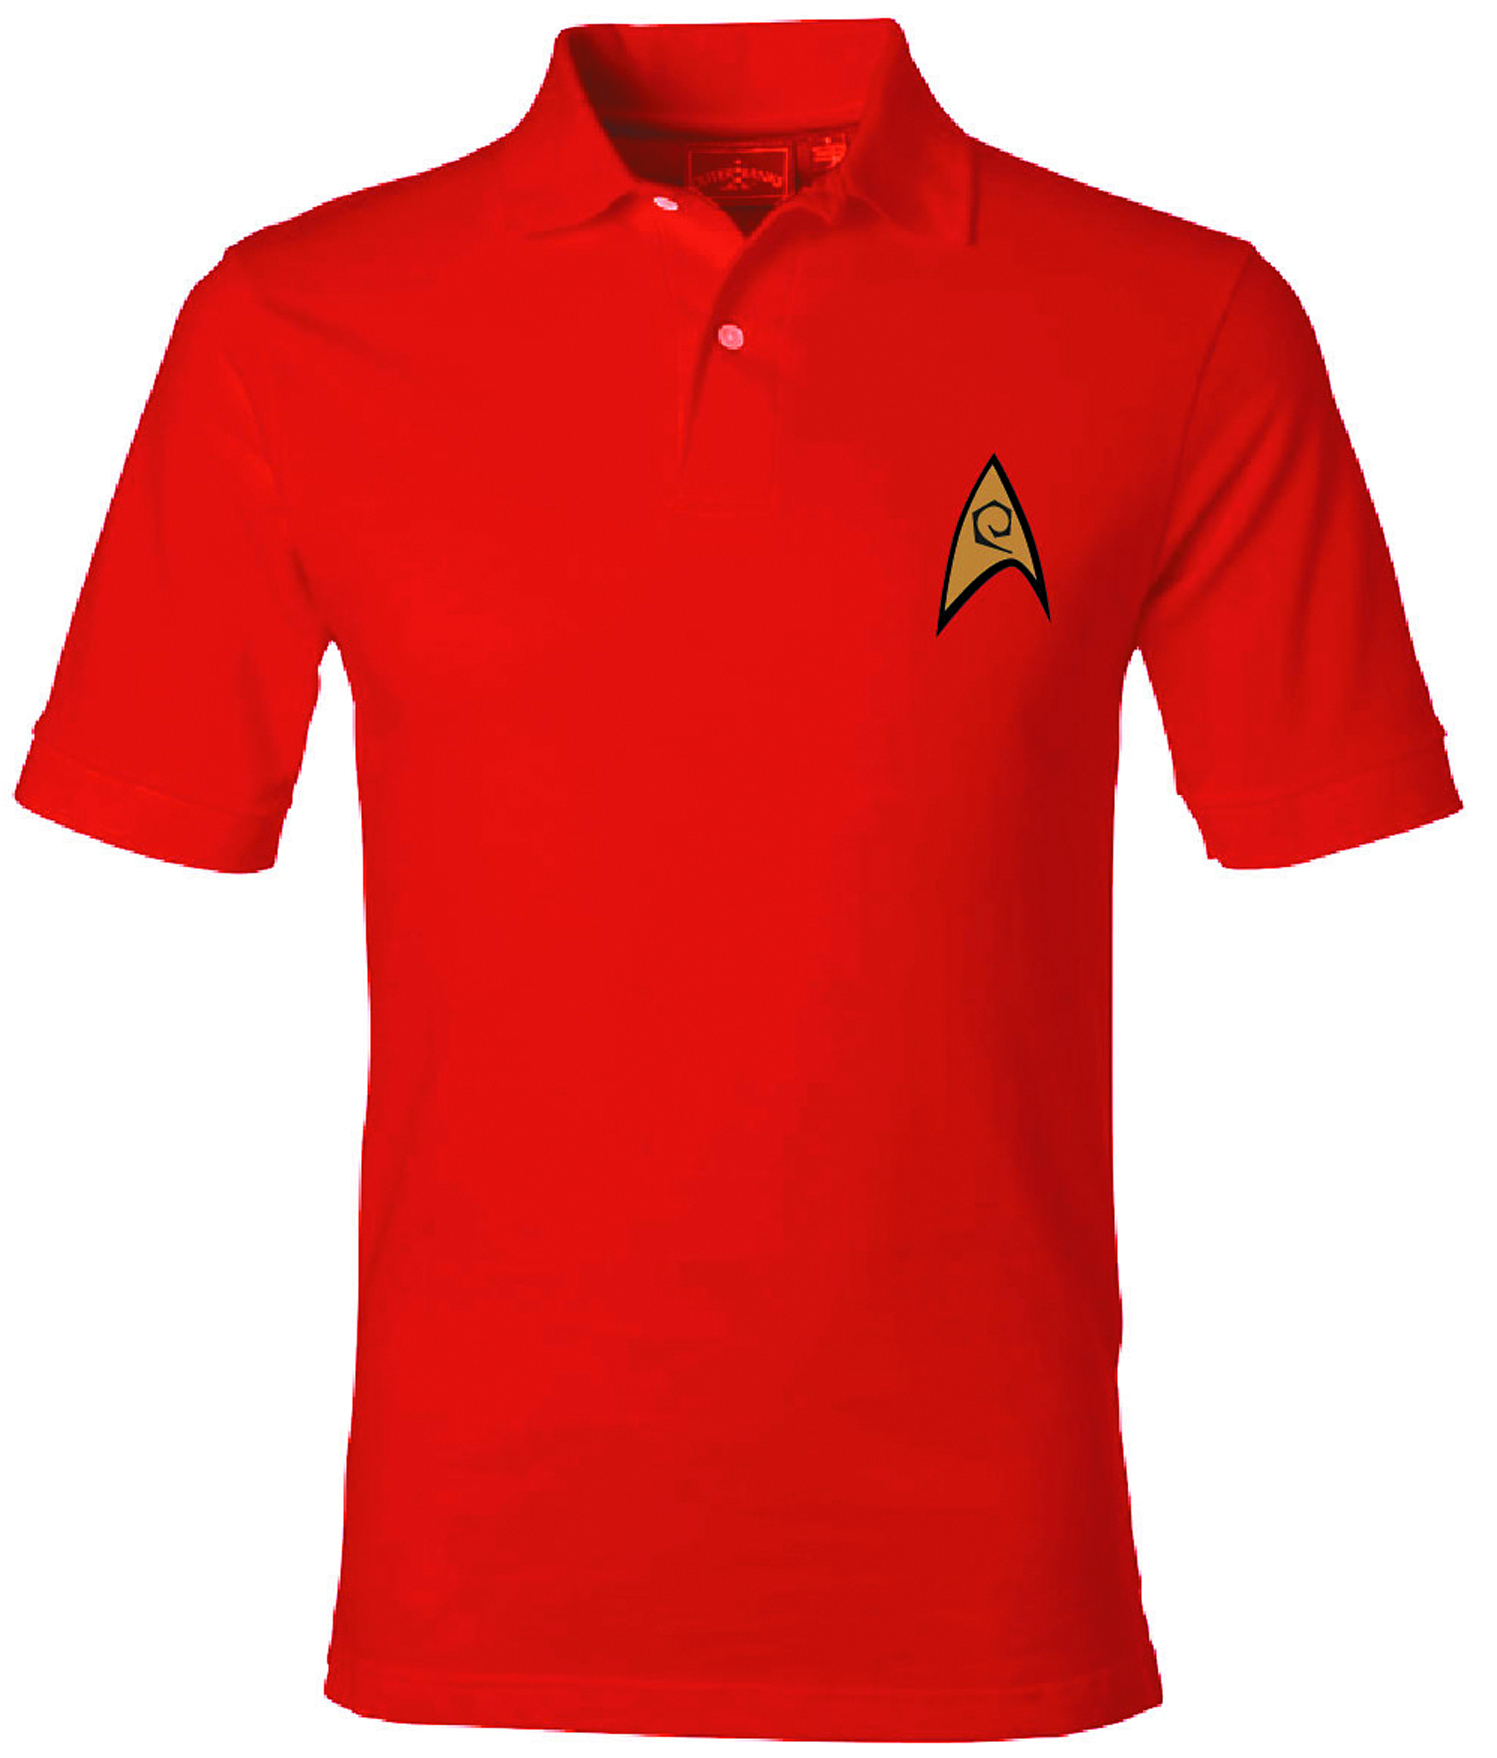 ST STARFLEET ENGINEERING SYMBOL RED POLO XXL